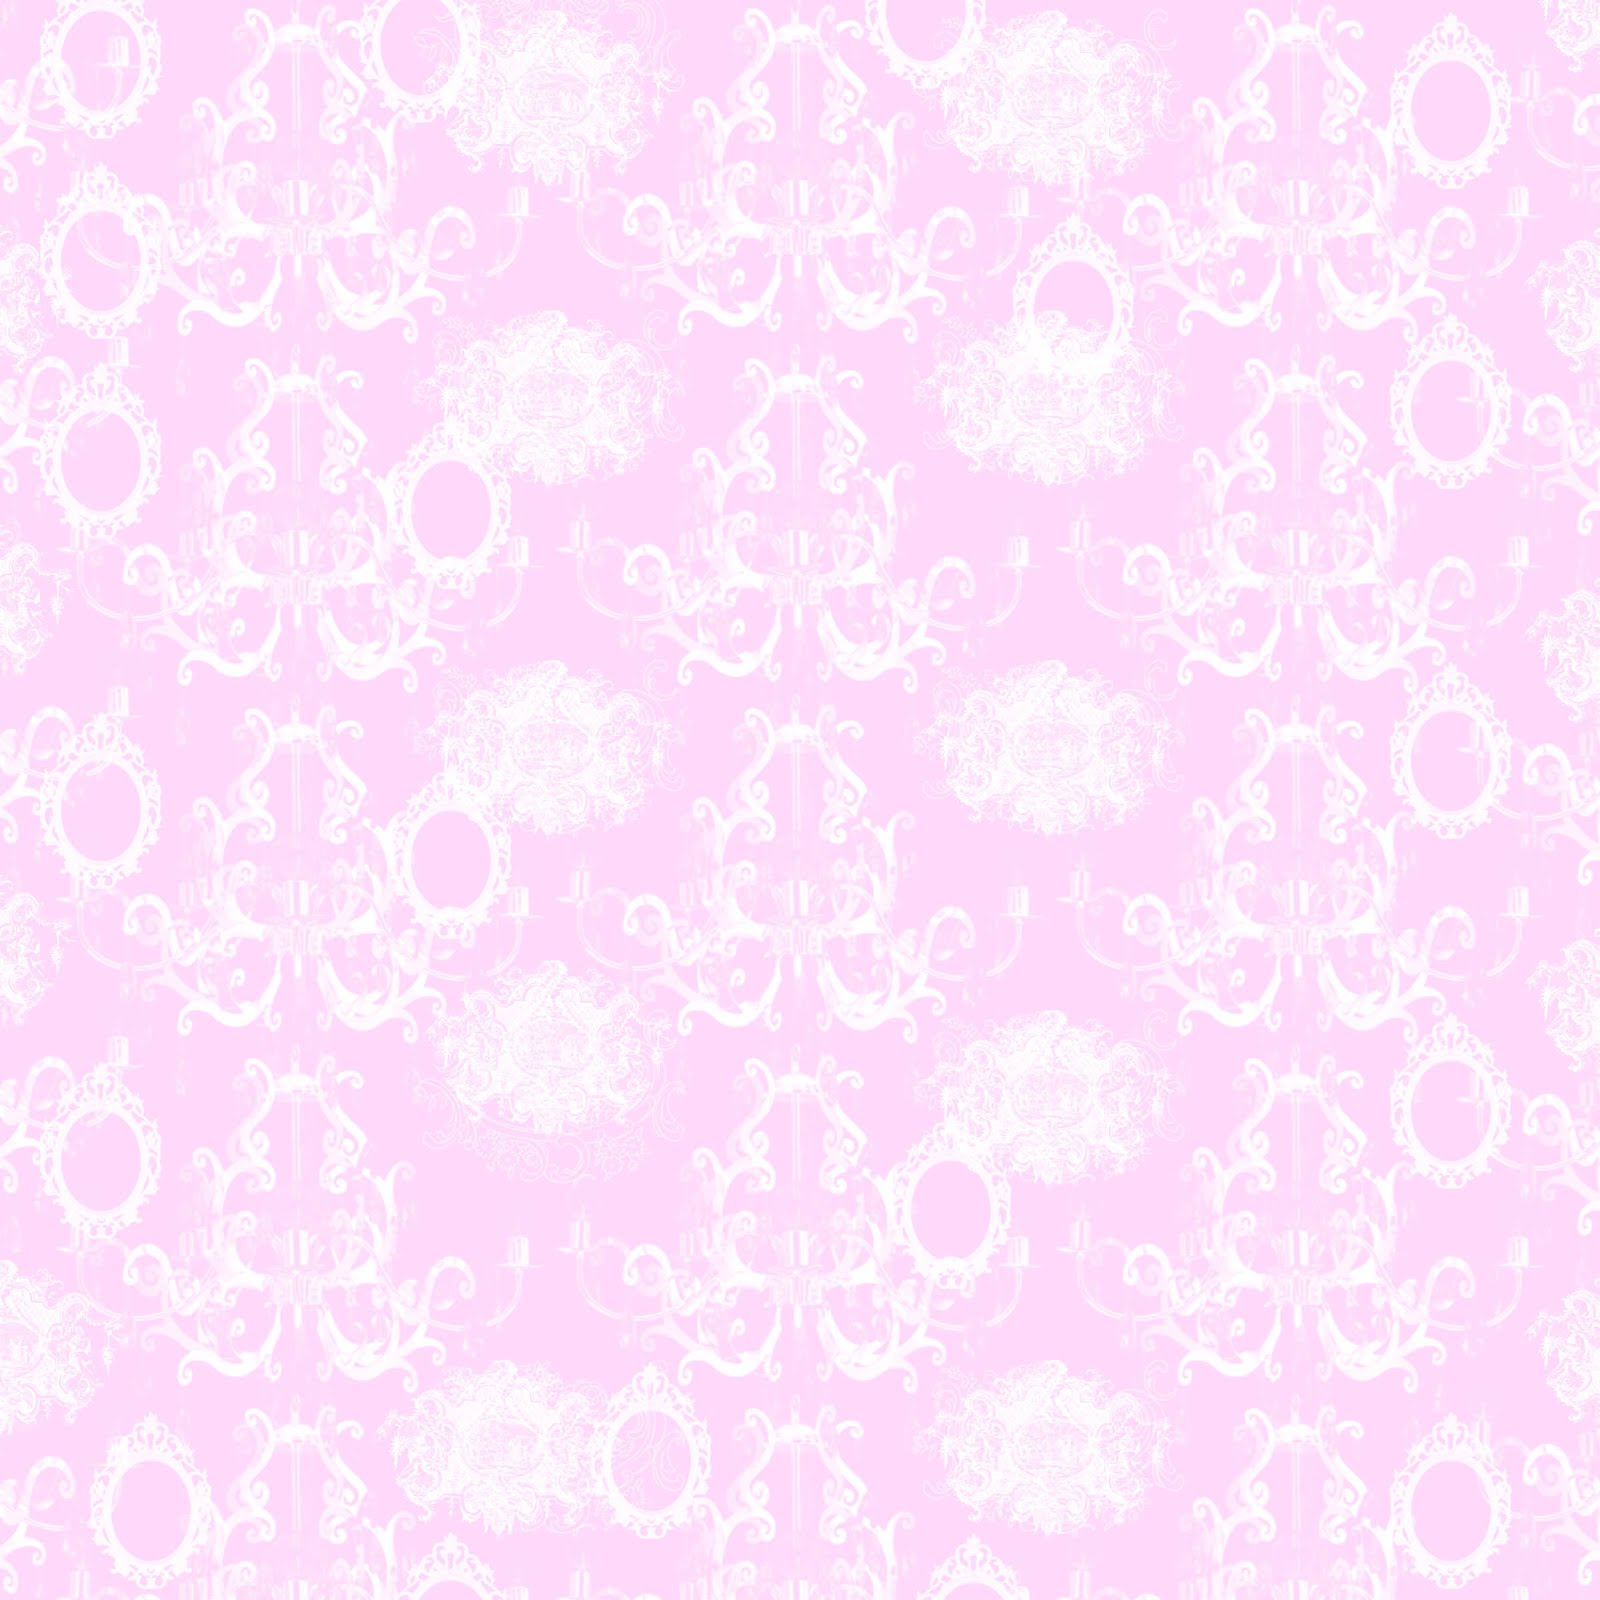 Bonjourvintage Free Digital Scrapbook Paper Shabby Background